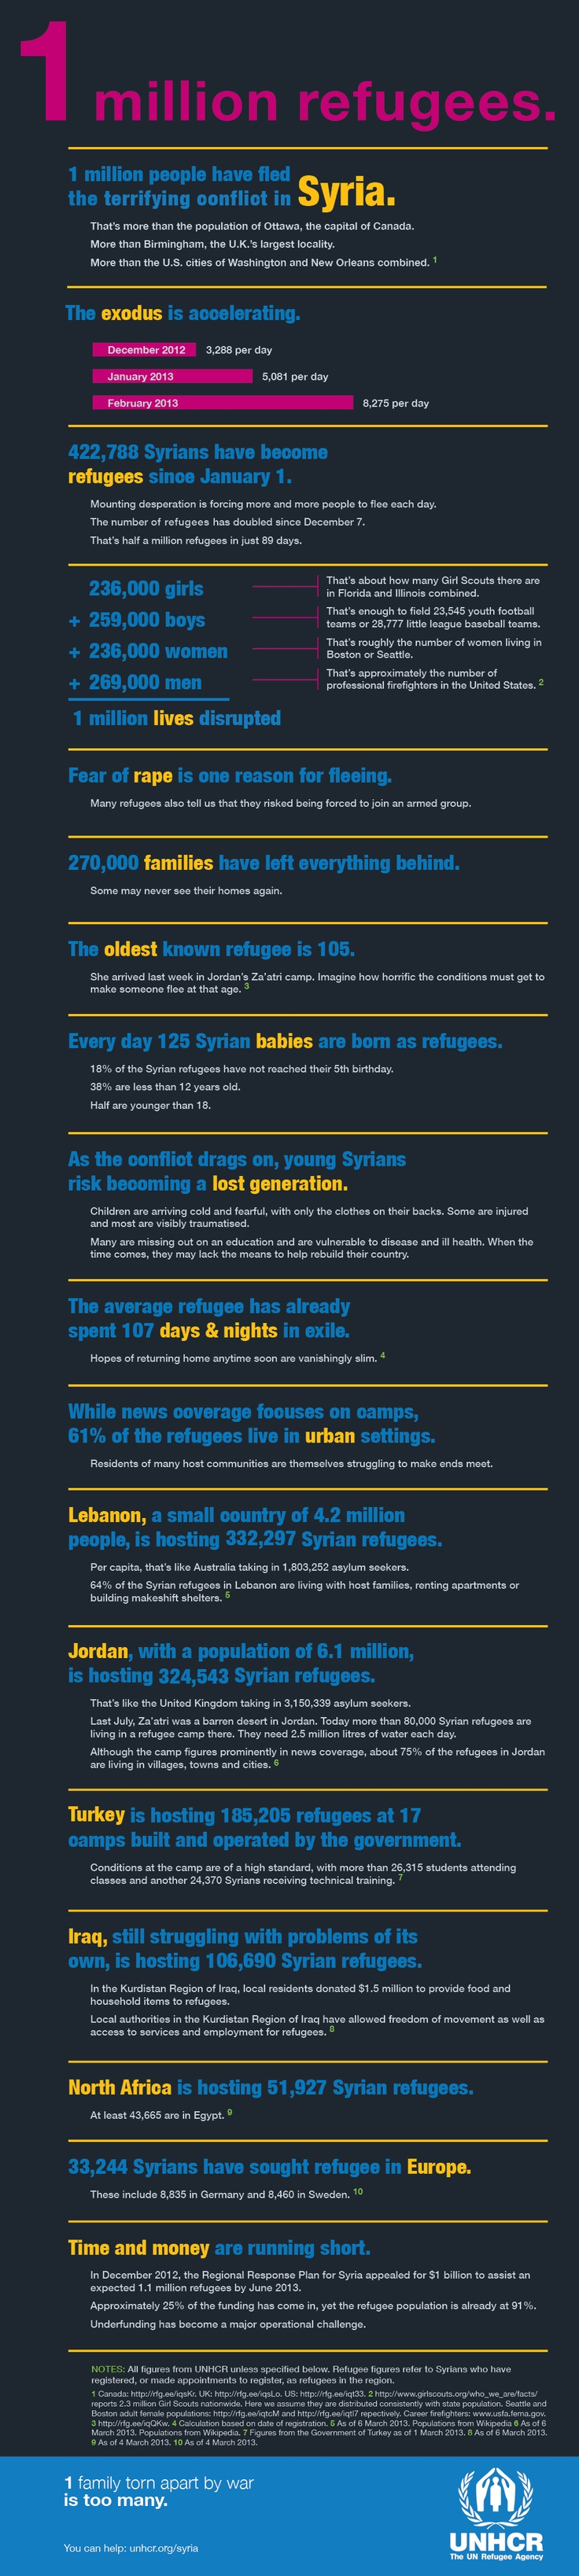 An information graphic created to depict the vast amount of Syrians that have fled. This was created when about 1 million had fled in total.